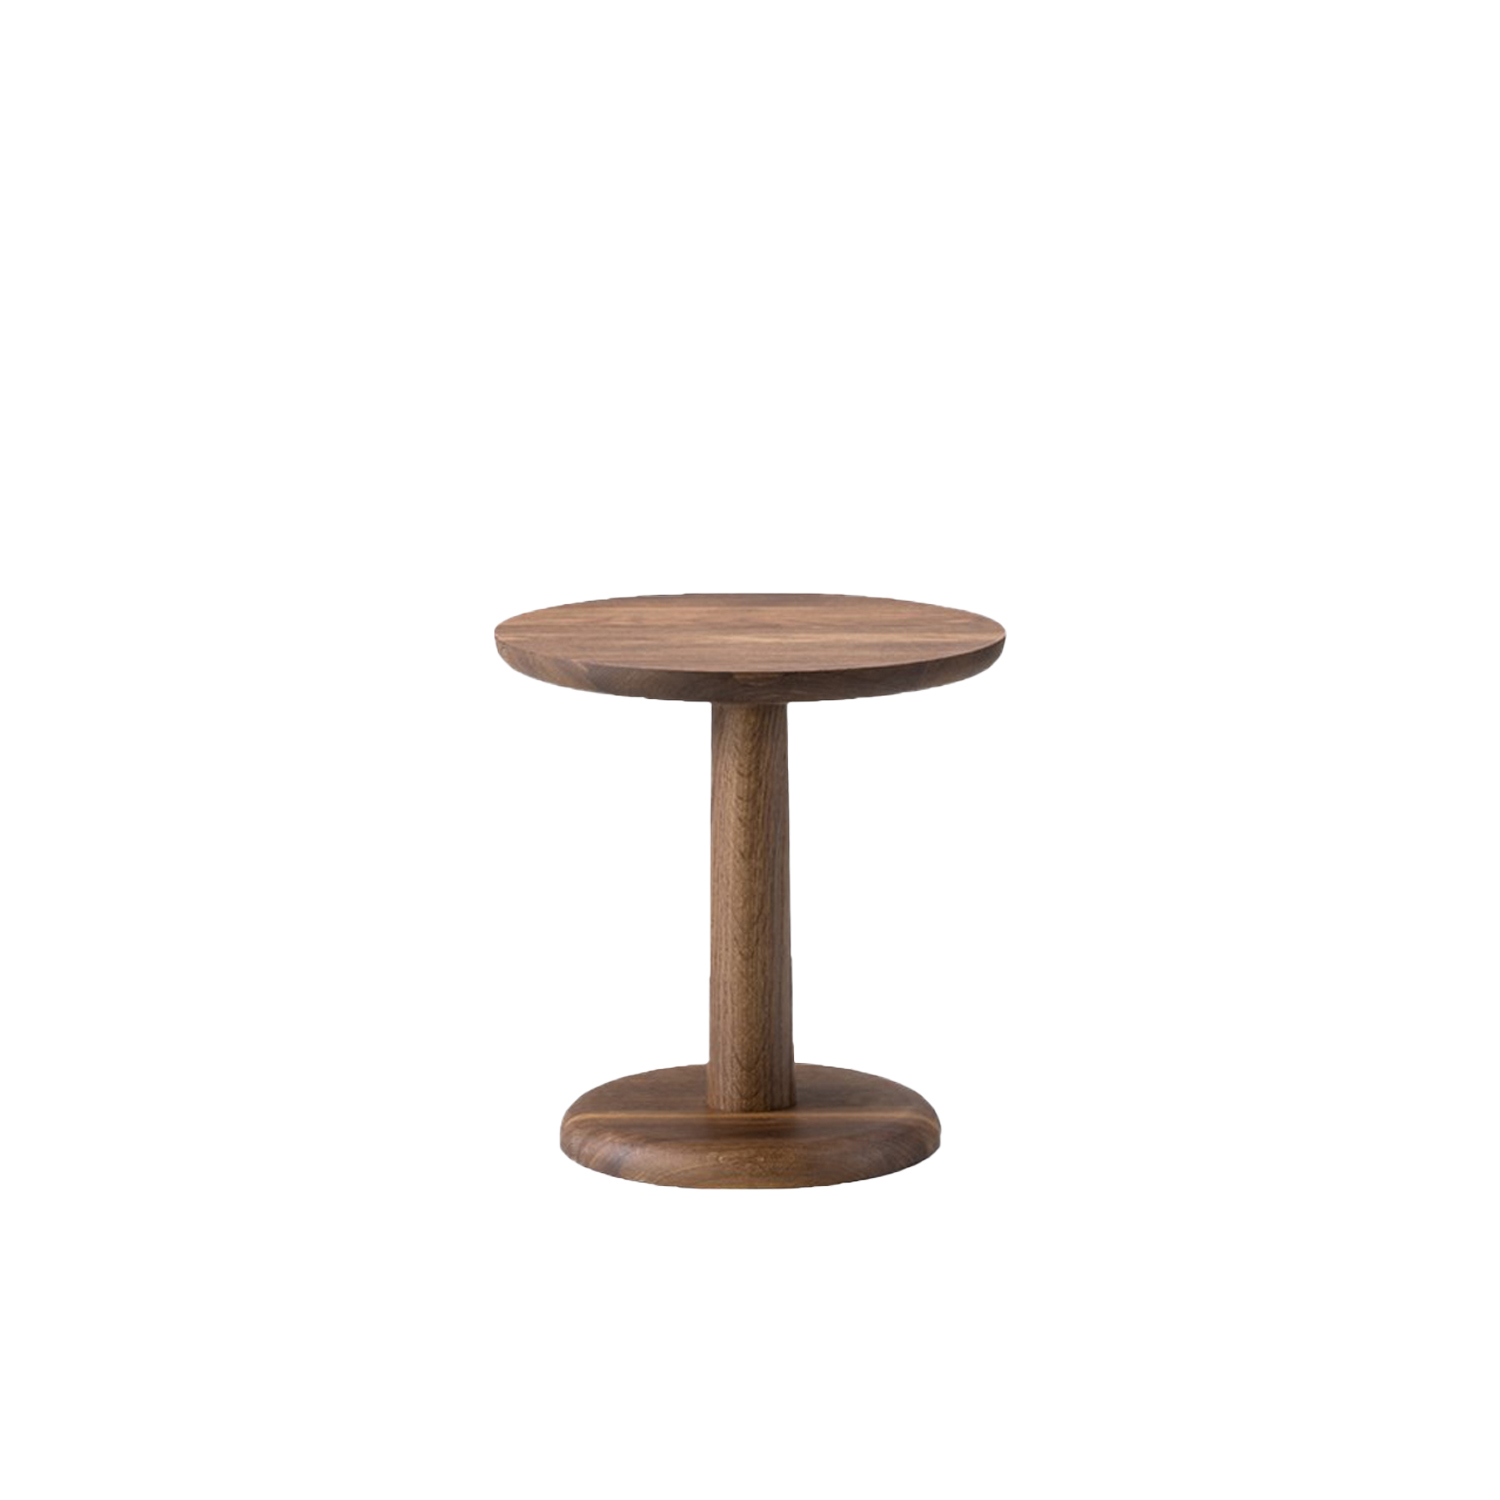 """Pon 1285 Coffee Table - Pon is a series of solid wood side tables in different sizes that are both very stable, versatile and which can be used as either stand-alone furniture or combined in different heights. The smaller Pon tables are modest in size, but large enough for a book, a glass or a tray.  British Jasper Morrison is known for creating simple, functional items fundamental to everyday life. A process that questions what's essential in a design and what's not, based on the ever-changing way we live our lives.   Morrison describes Pon as an alternative to the """"overrated and badly named 'coffee table.'"""" Why should a coffee table take up space, when it could be several small tables placed as you like? Pon gives you options for customising your own table solution.   Circular in shape and modest in size, Pon comes in varying heights which you can place in countless configurations. It's equally appealing as a side table, ideal for a laptop or tablet, a book or magazine, a drink or a snack. Use it as a stand-alone beside a lounge chair or grouped together in a sofa set-up.   Adding to Pon's versatility is its stability. Made of solid oak, Pon was designed with the top, stem and base combined to form one solid entity. A unique feature that opens up opportunities for this endearing, robust design to find a home in hotel lobbies, art galleries, retail spaces, restaurants, bars and the like, as well as domestic settings.  